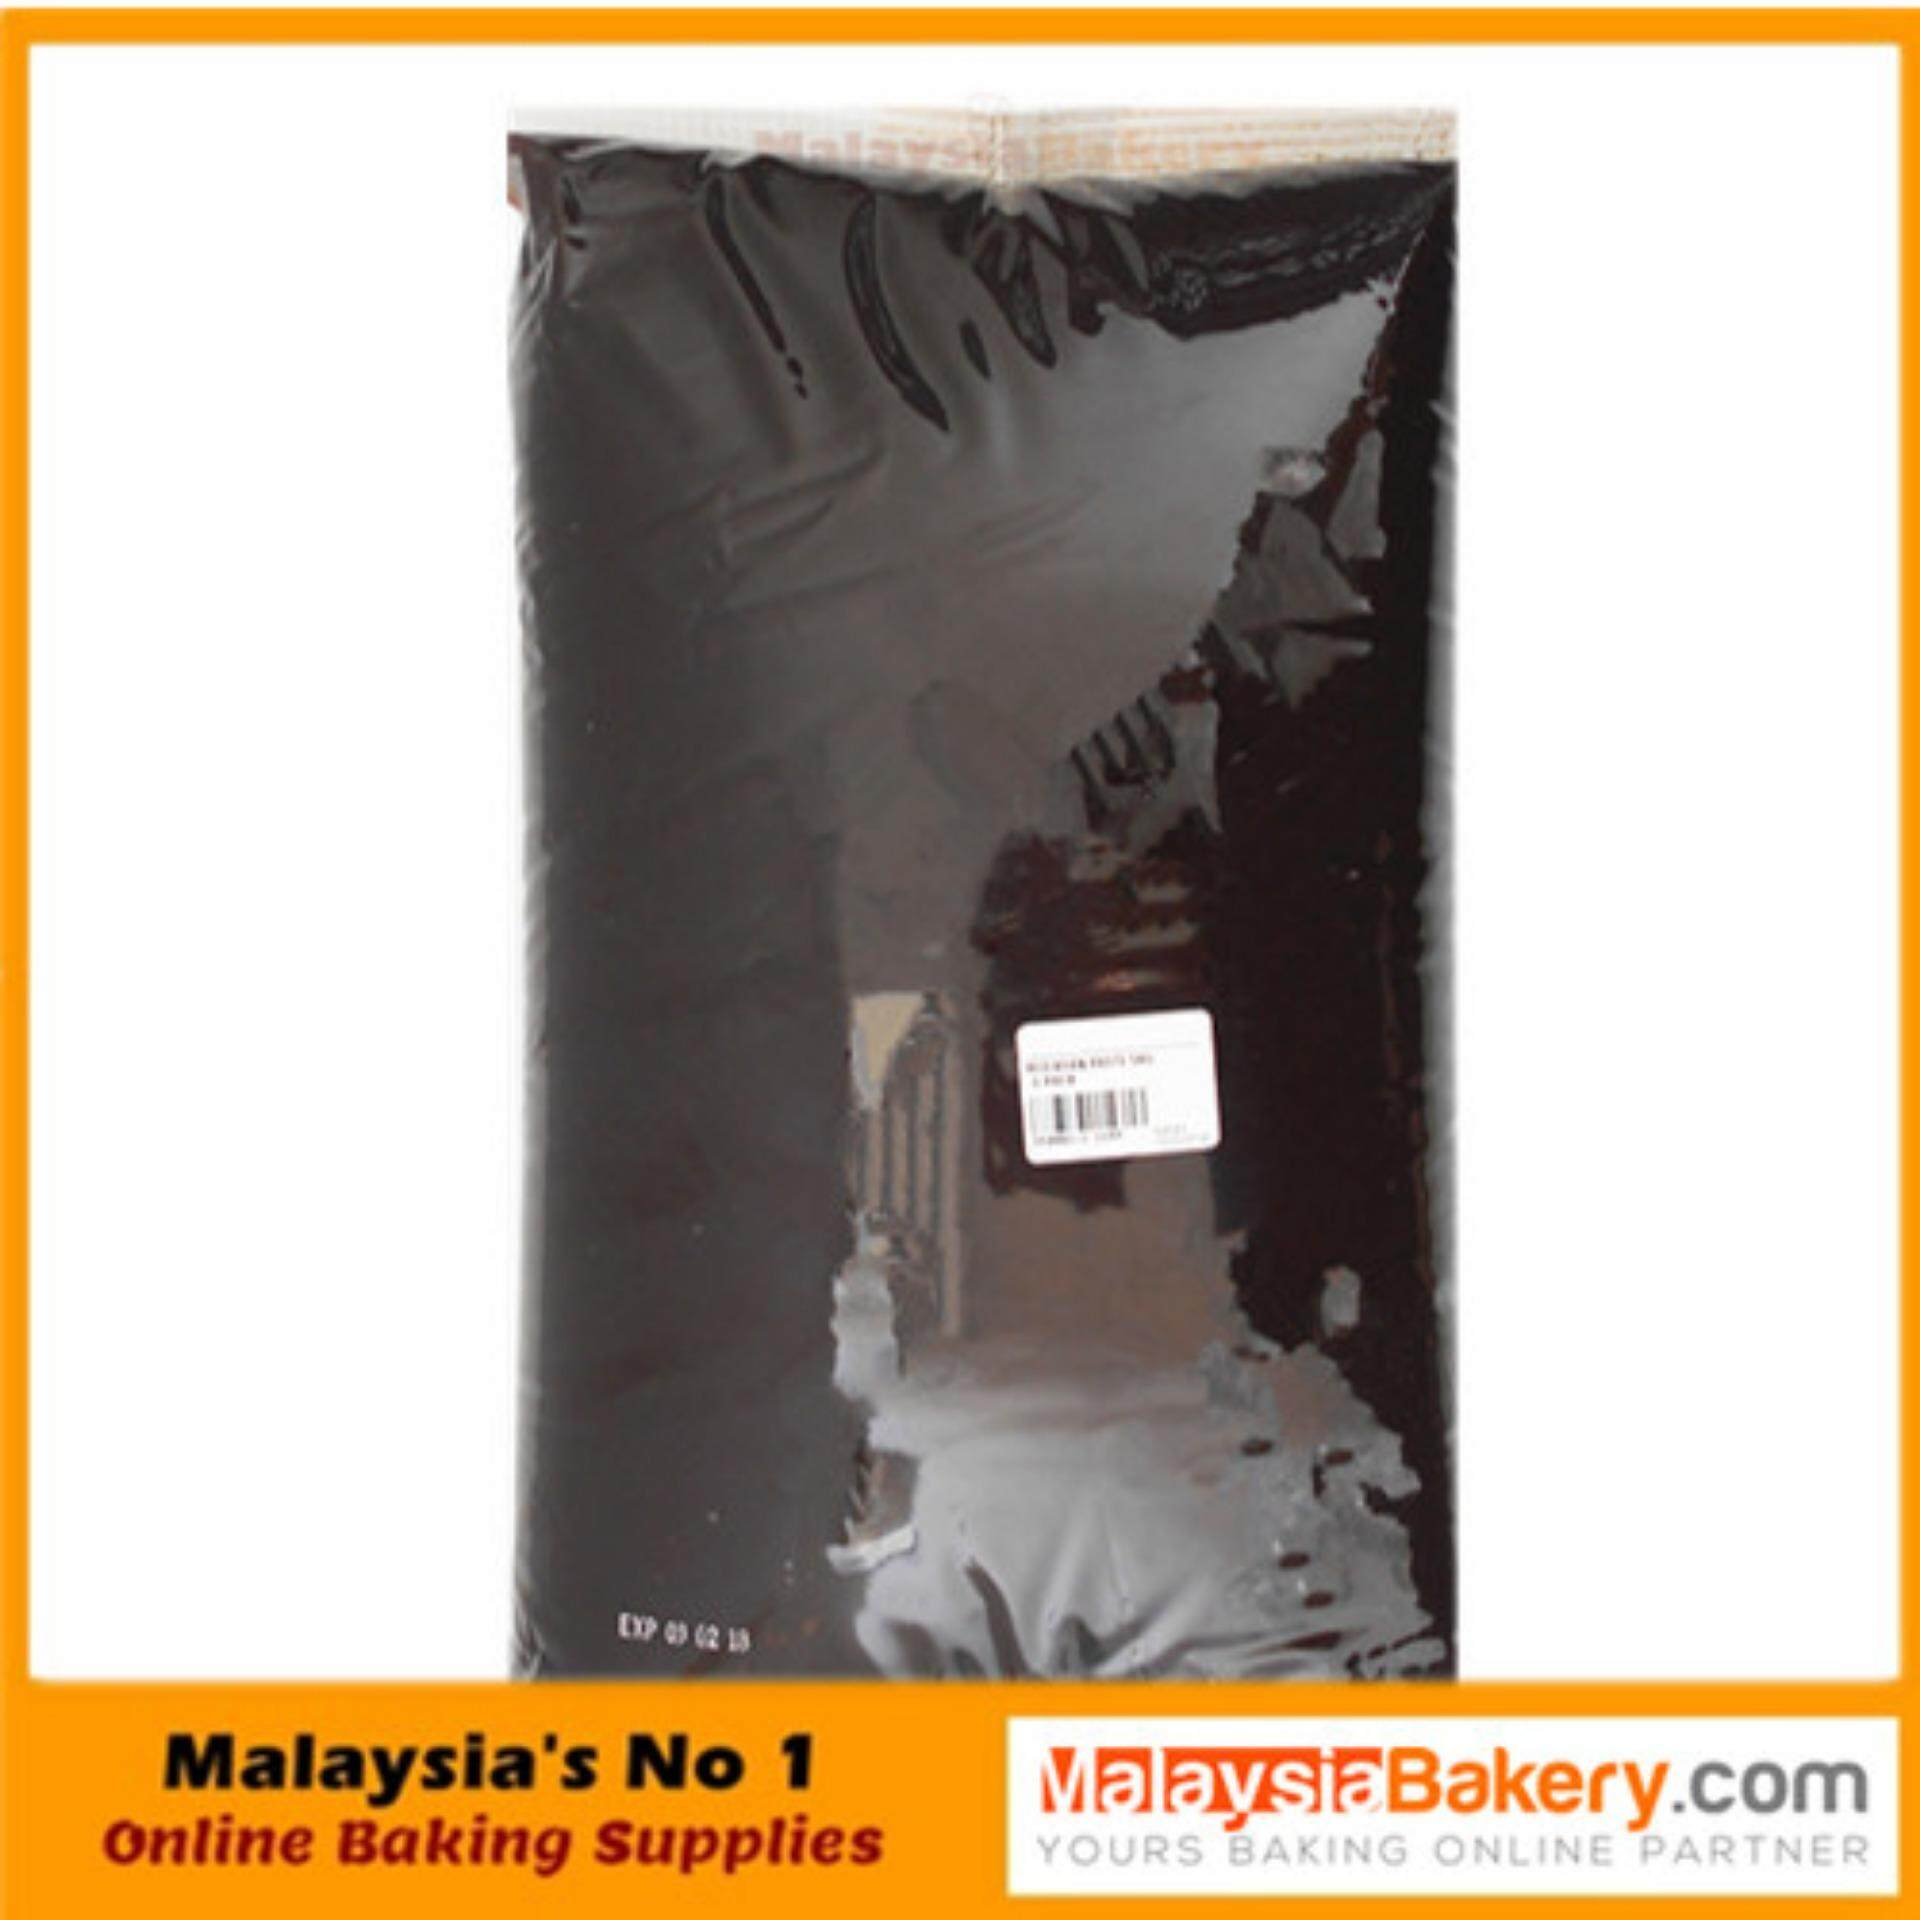 Red Bean Paste 5kg 1 Pack By Malaysiabakery.com.